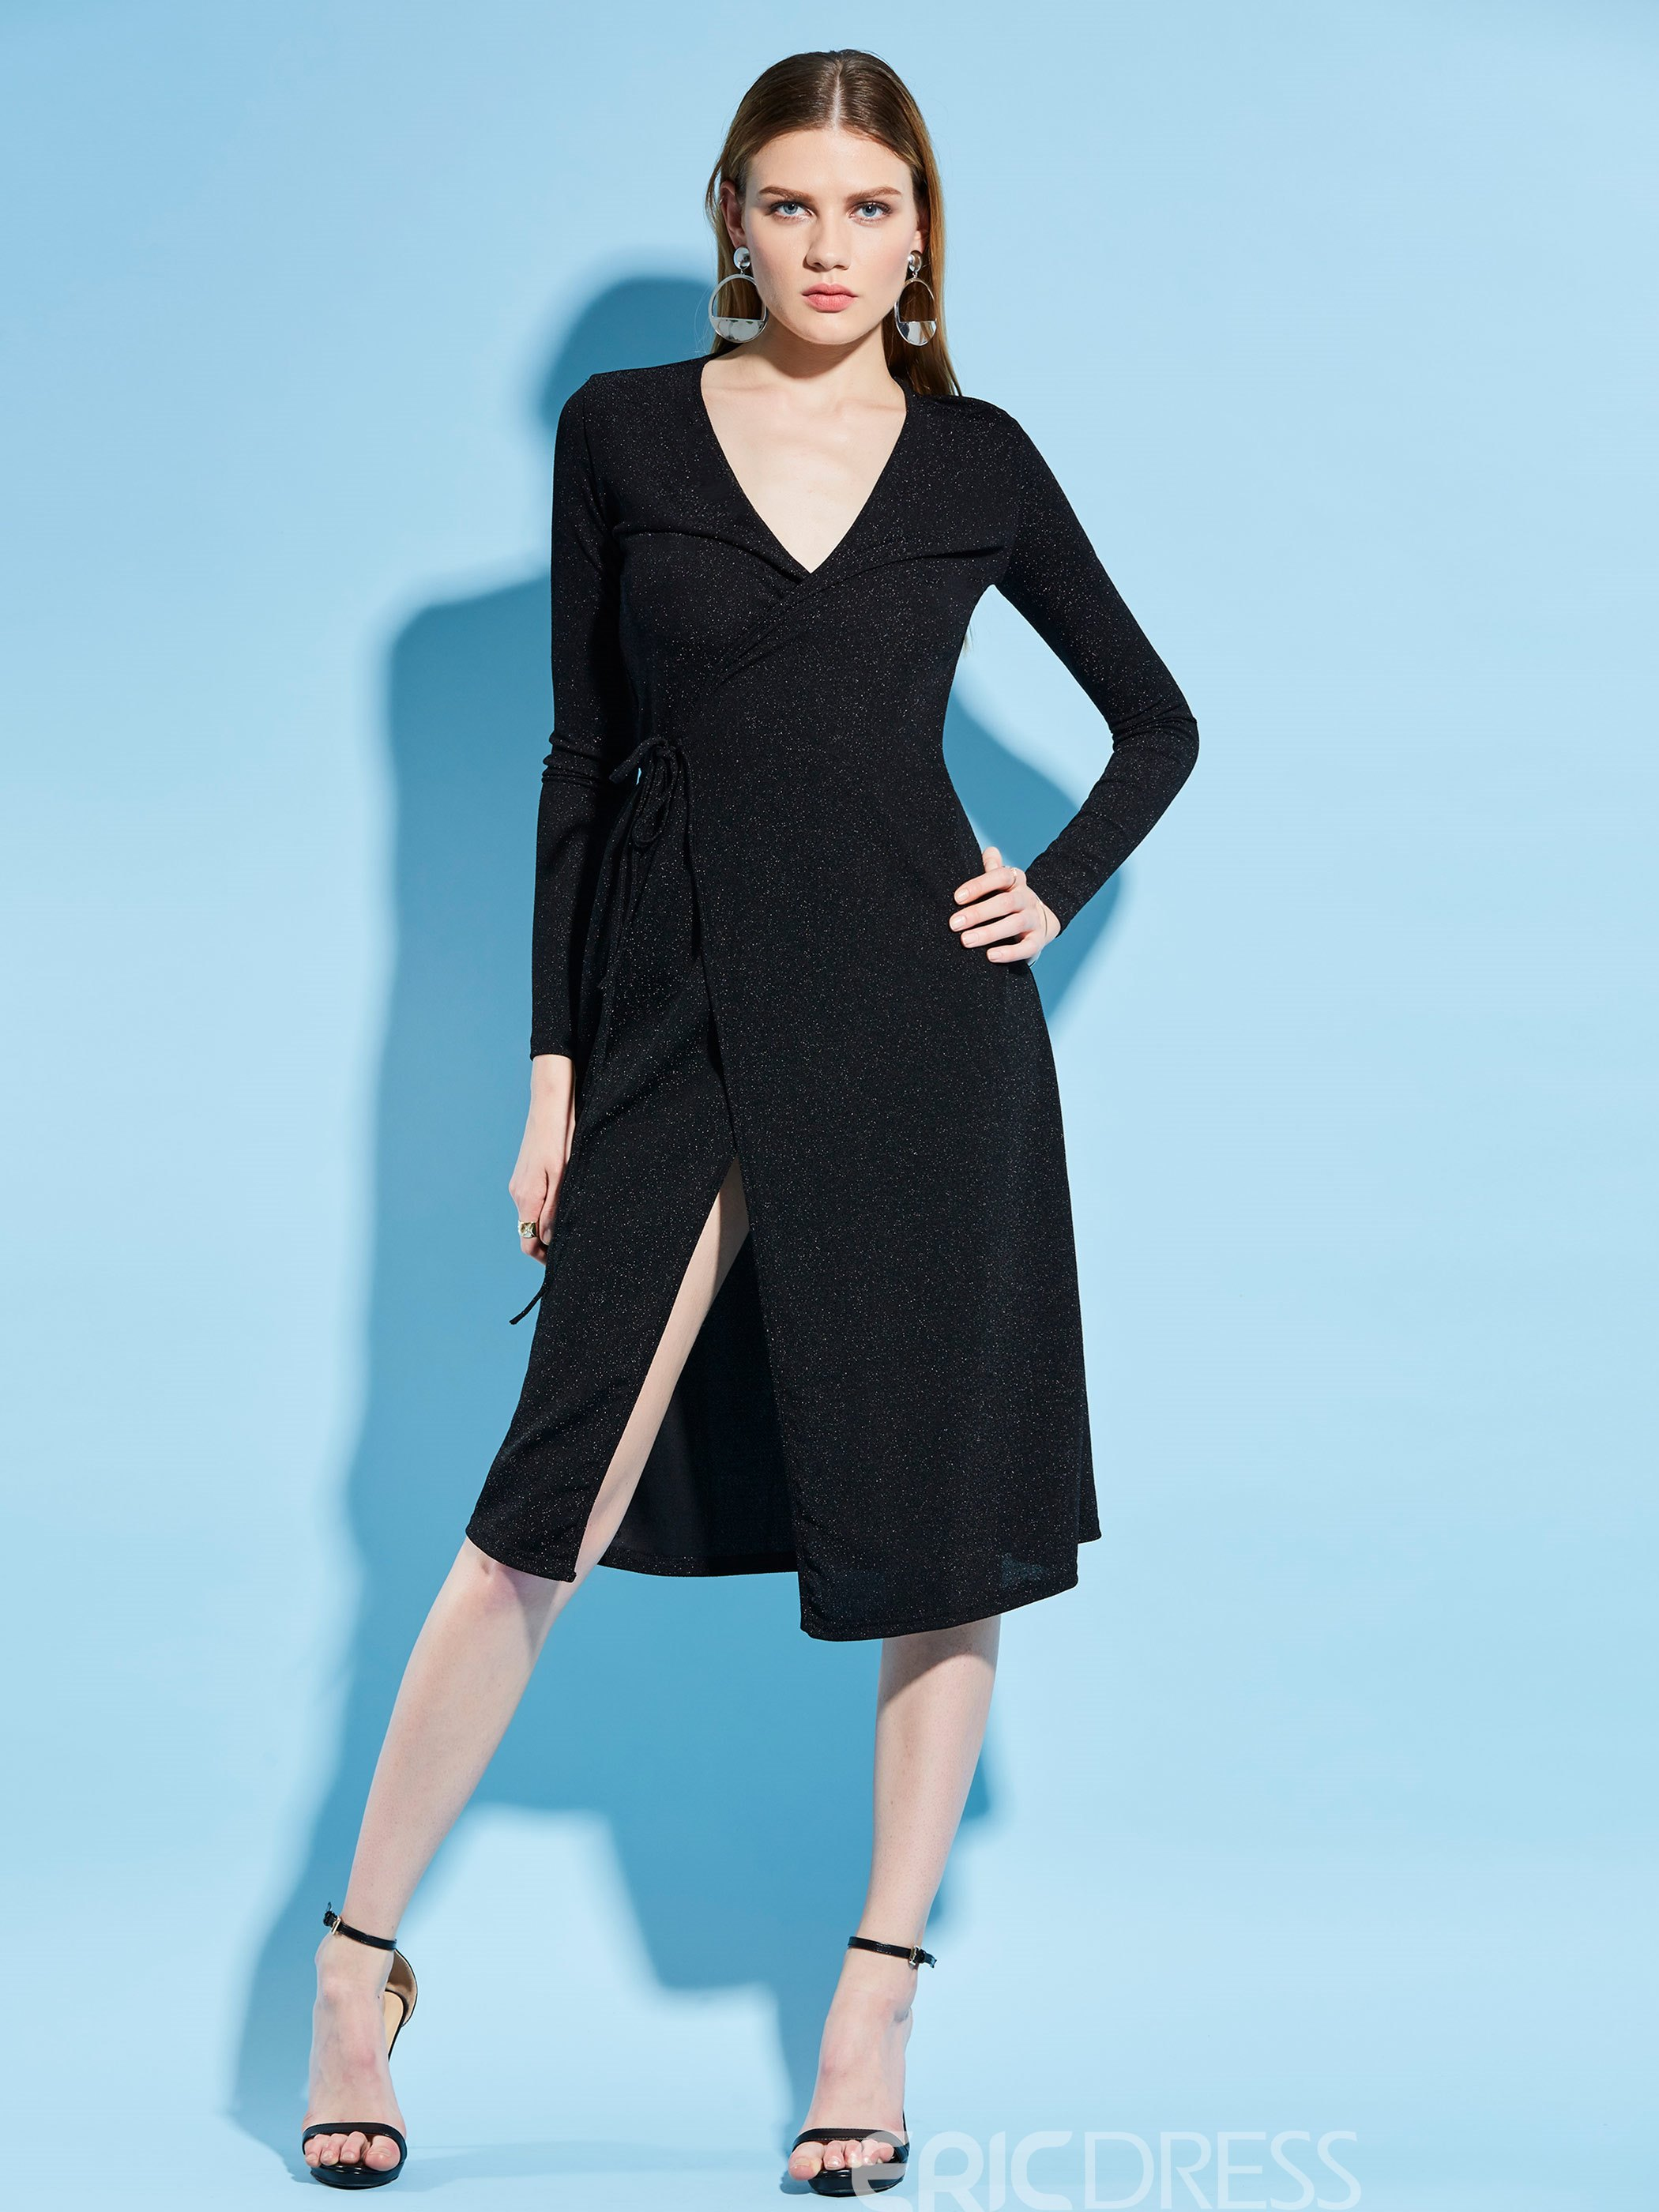 V-Neck Plain Mid-Calf Women's A-Line Dress